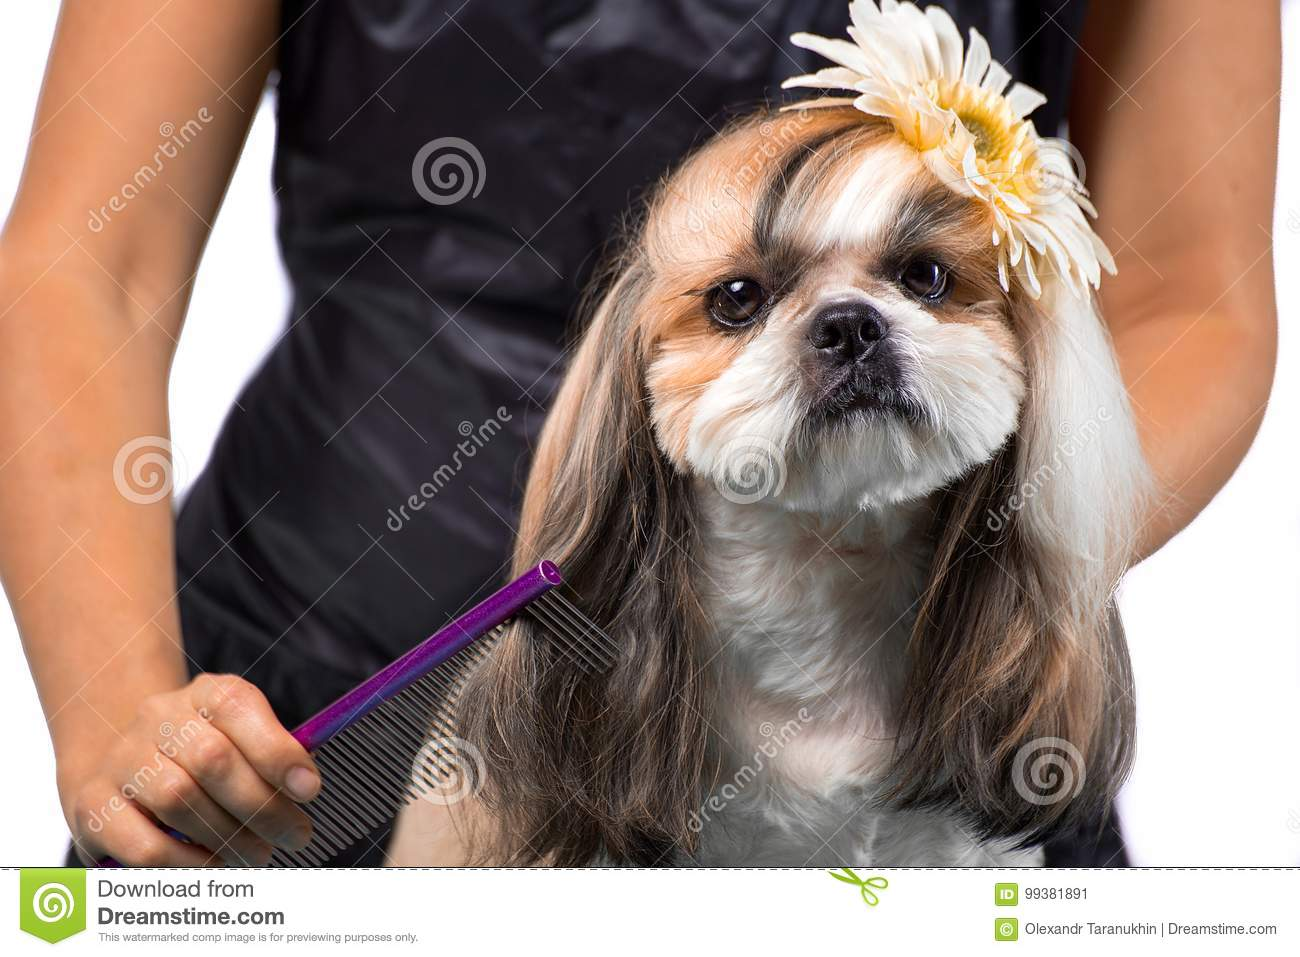 Beautiful Shih Tzu Dog At The Groomers Hands With Comb Stock Image